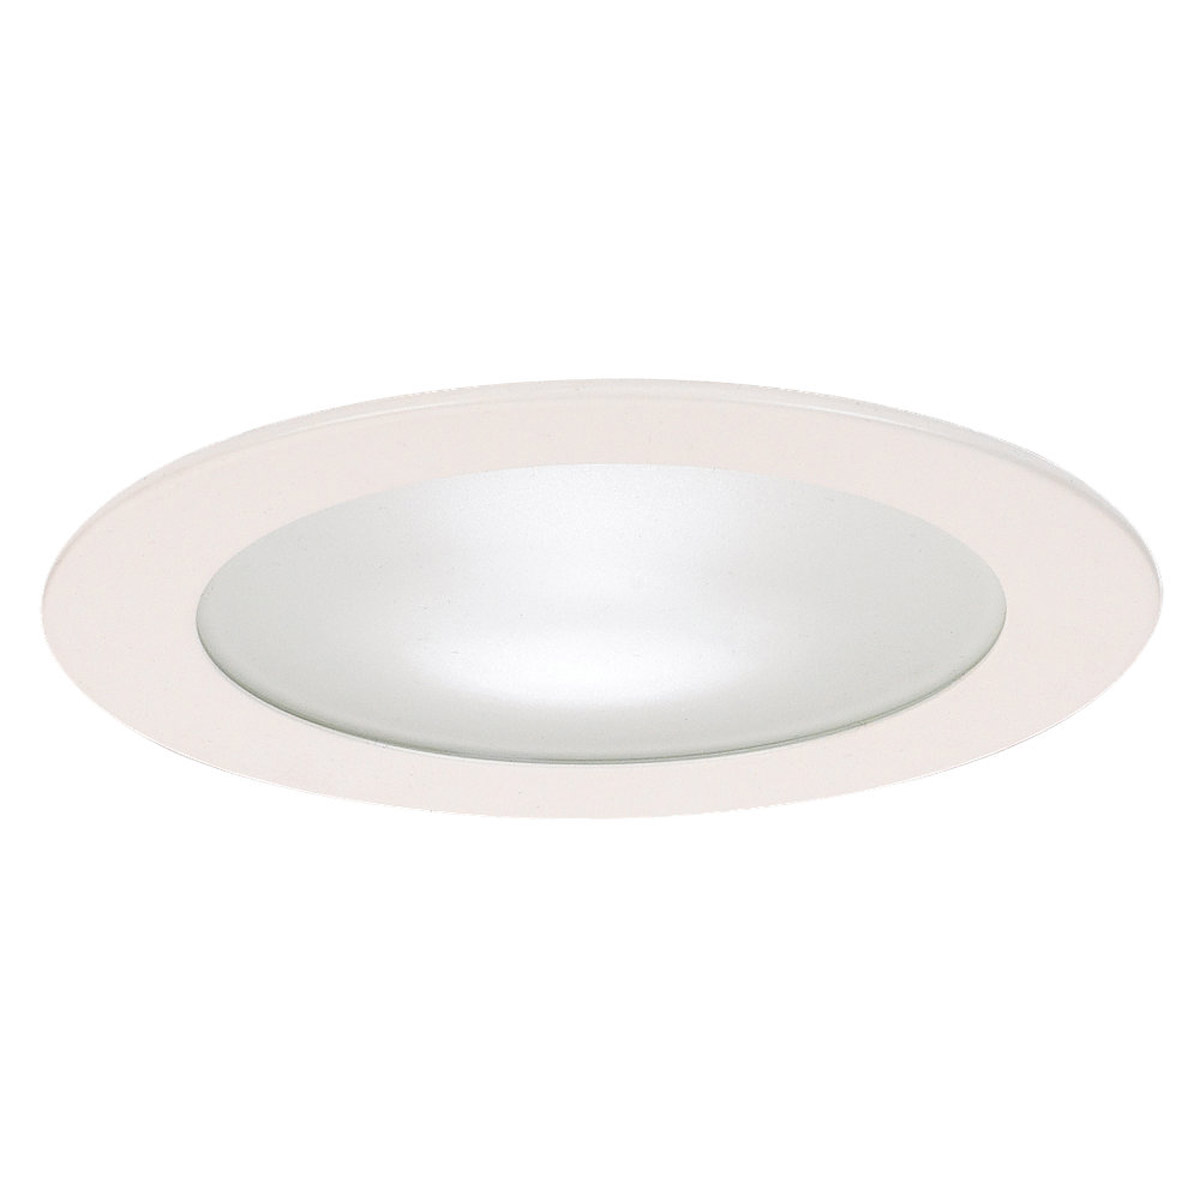 Sea Gull Lighting Signature Recessed Trim Only in White 12041AT-15 photo